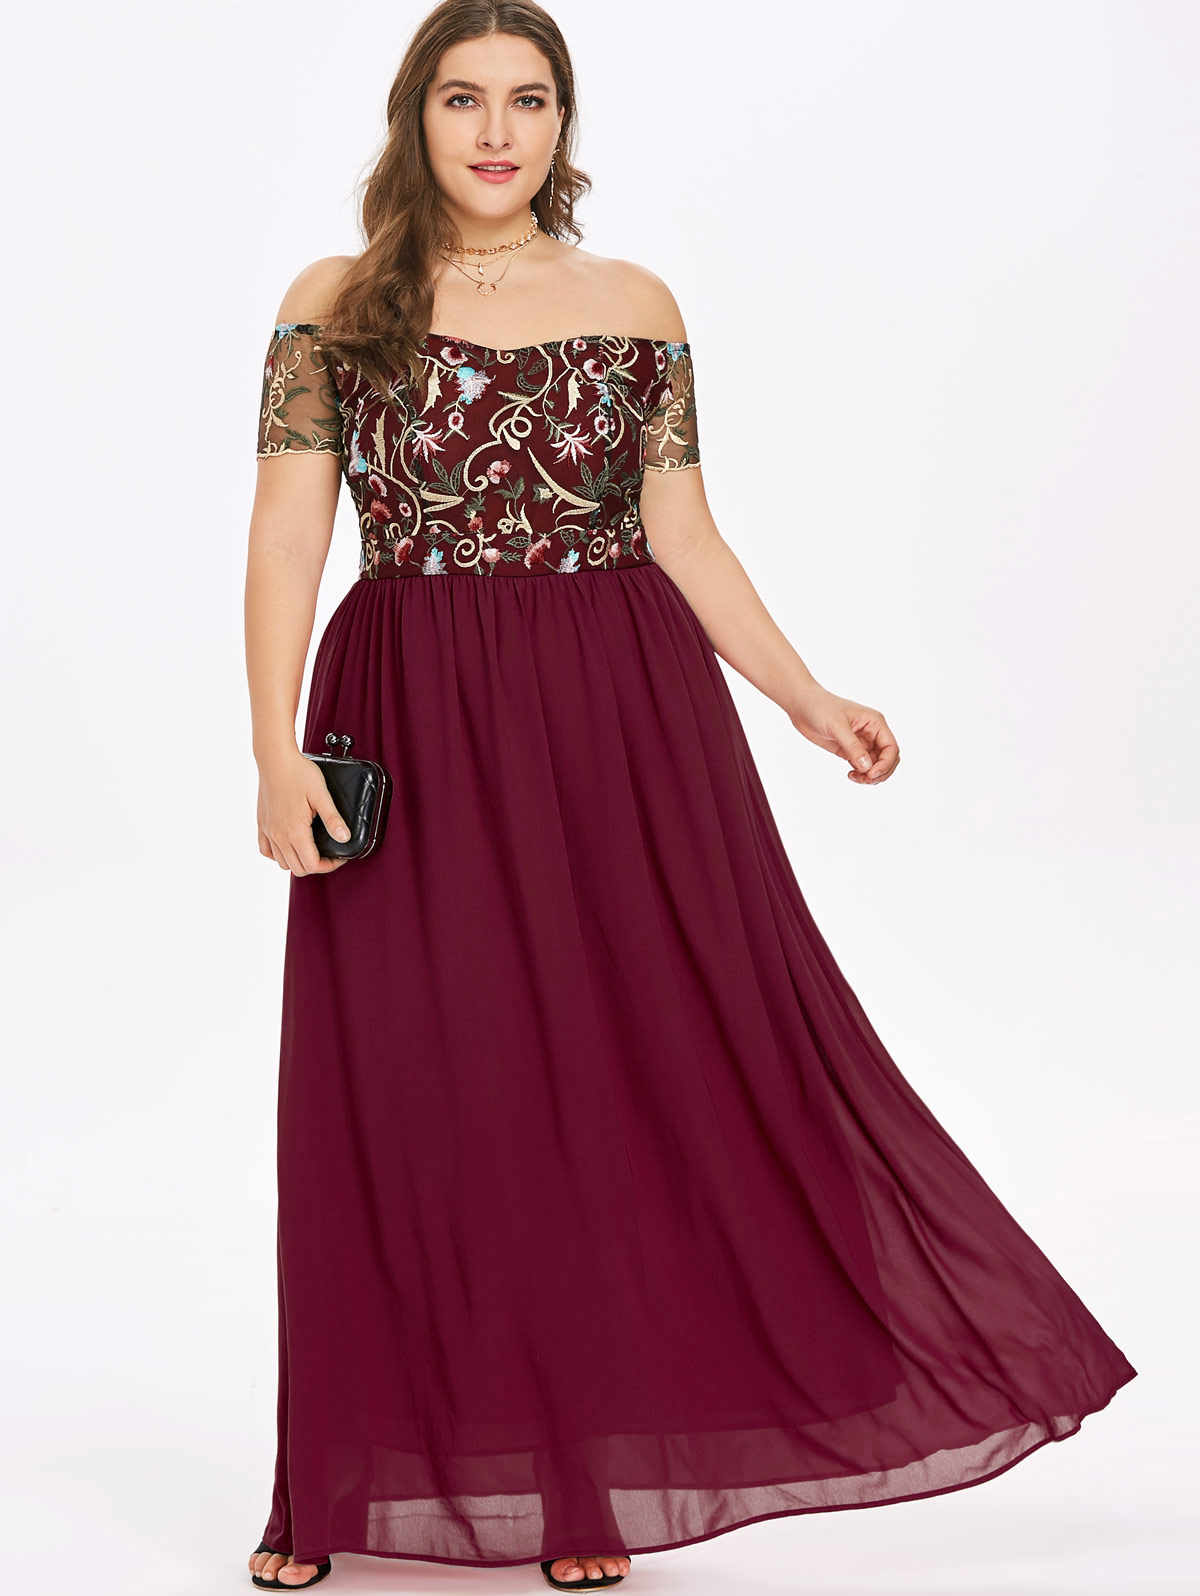 Wipalo Plus Size 5XL Floral Embroidery Off The Shoulder Maxi Dress High  Waist Floor-Length 18ab0a3c9513